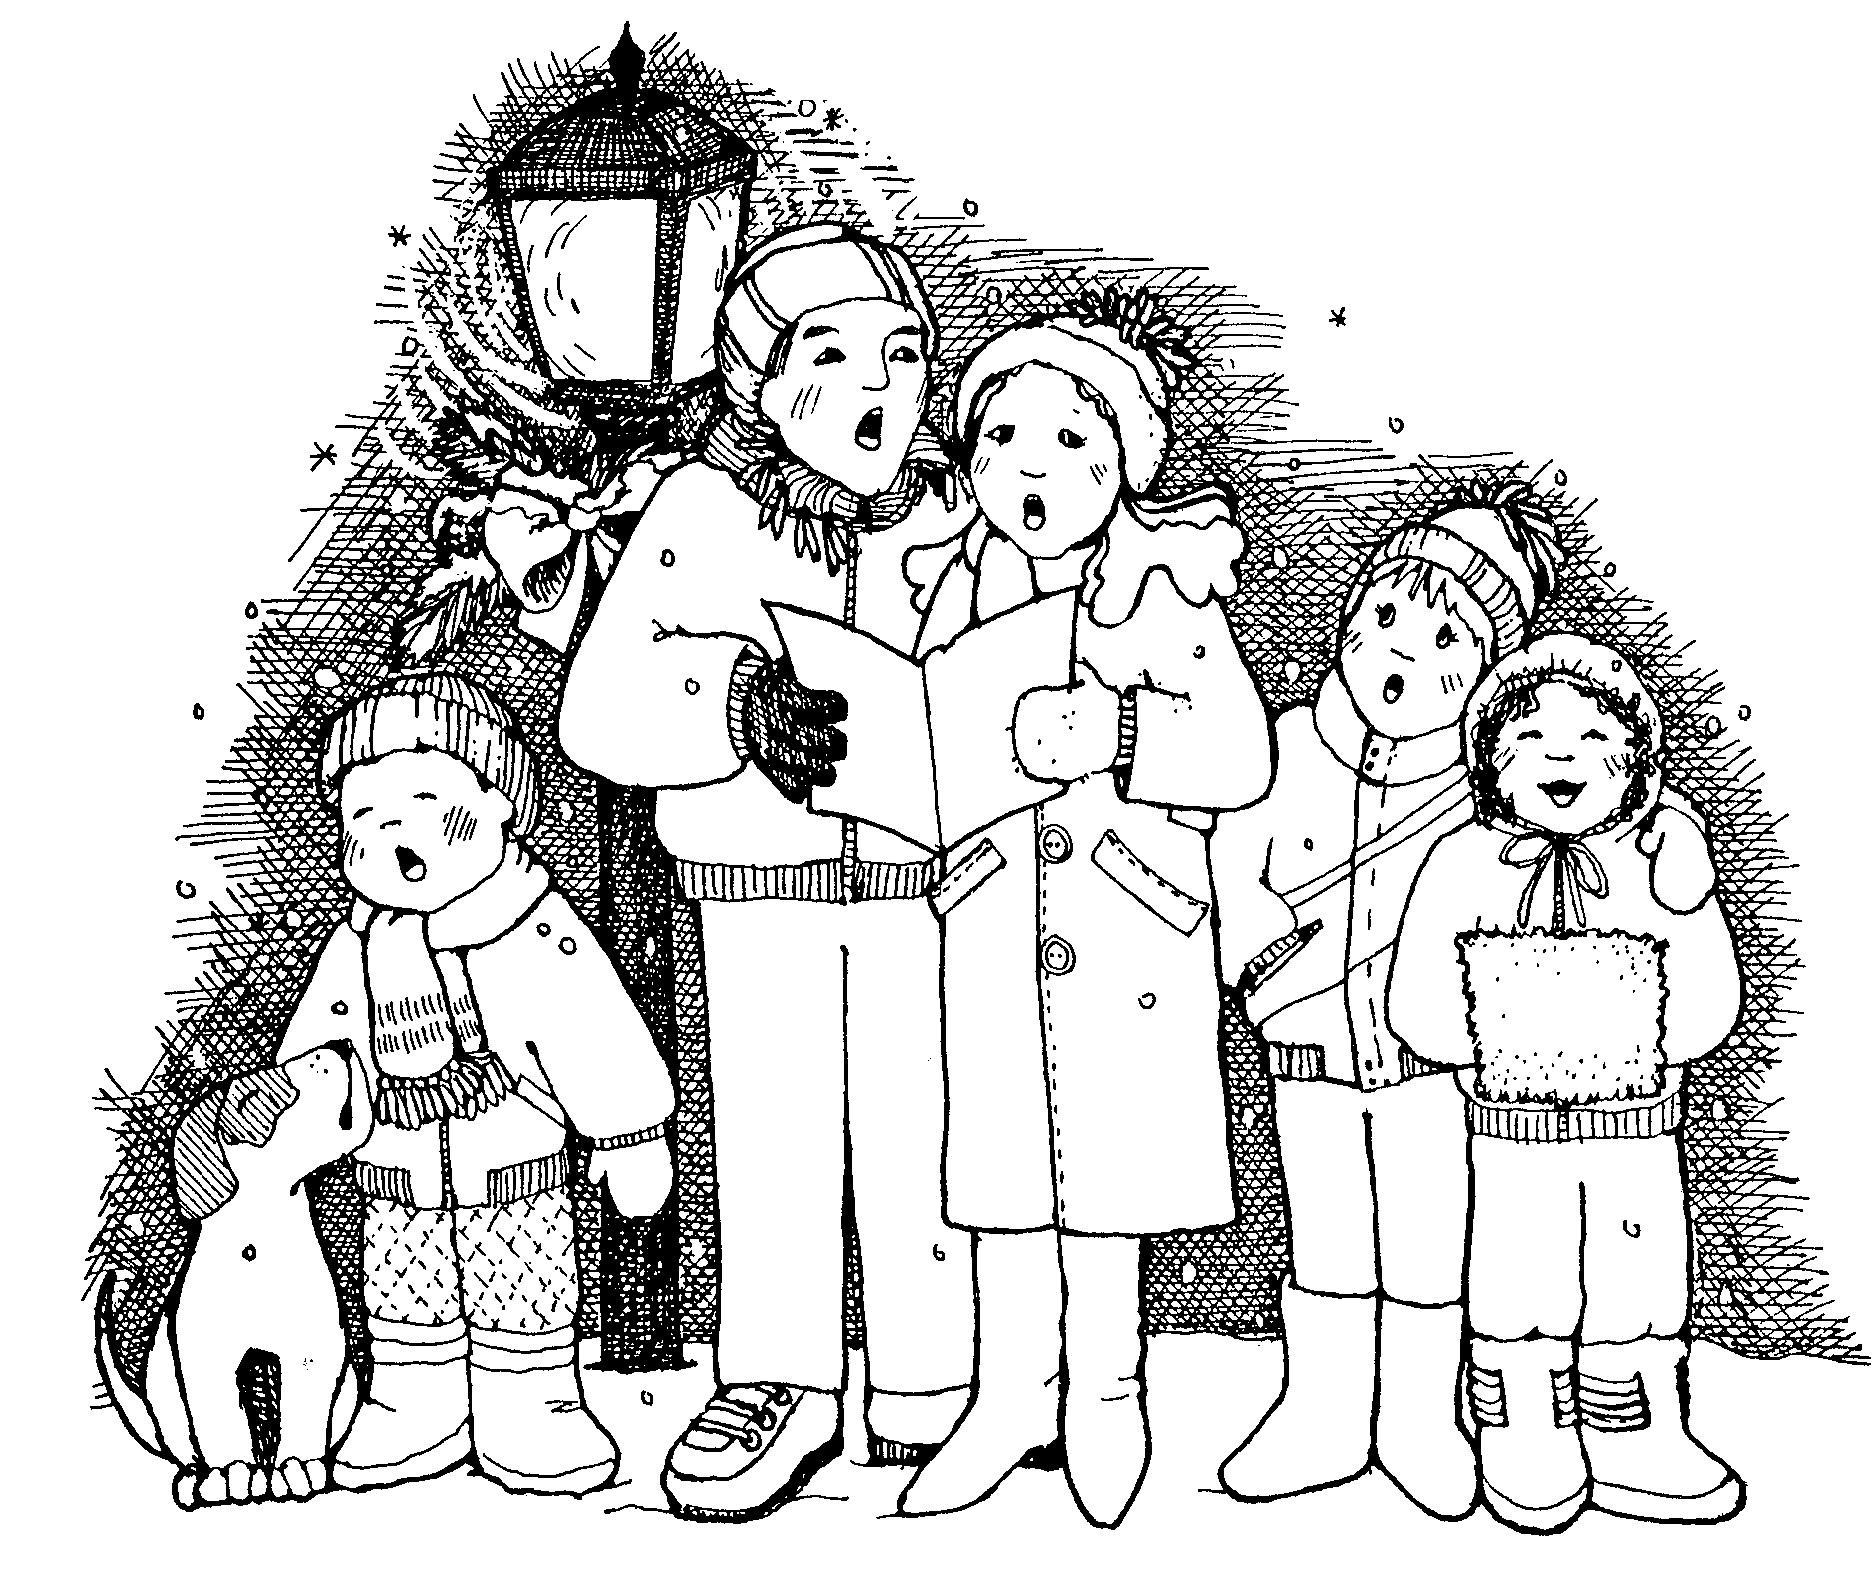 Free christmas cliparts carolers. Caroling clipart black and white